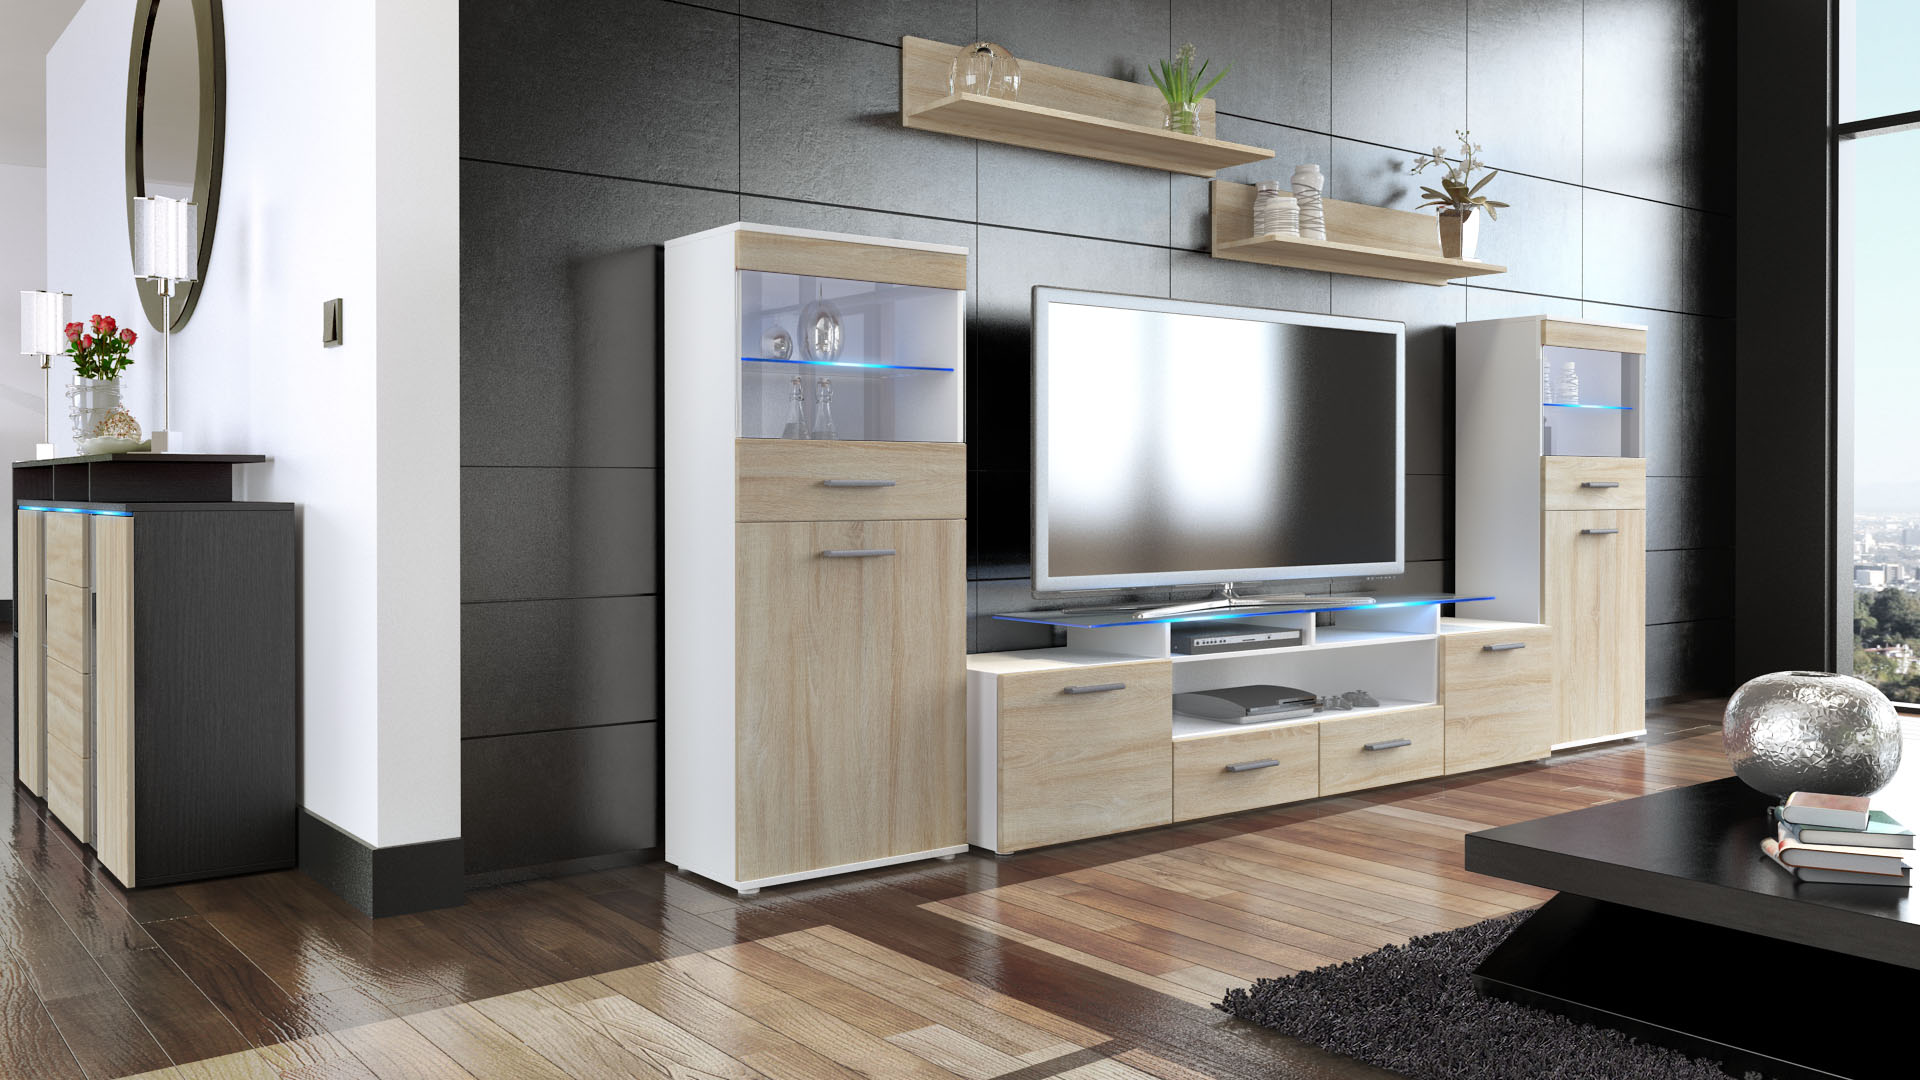 wohnwand schrankwand anbauwand almada v2 in wei hochglanz naturt ne ebay. Black Bedroom Furniture Sets. Home Design Ideas